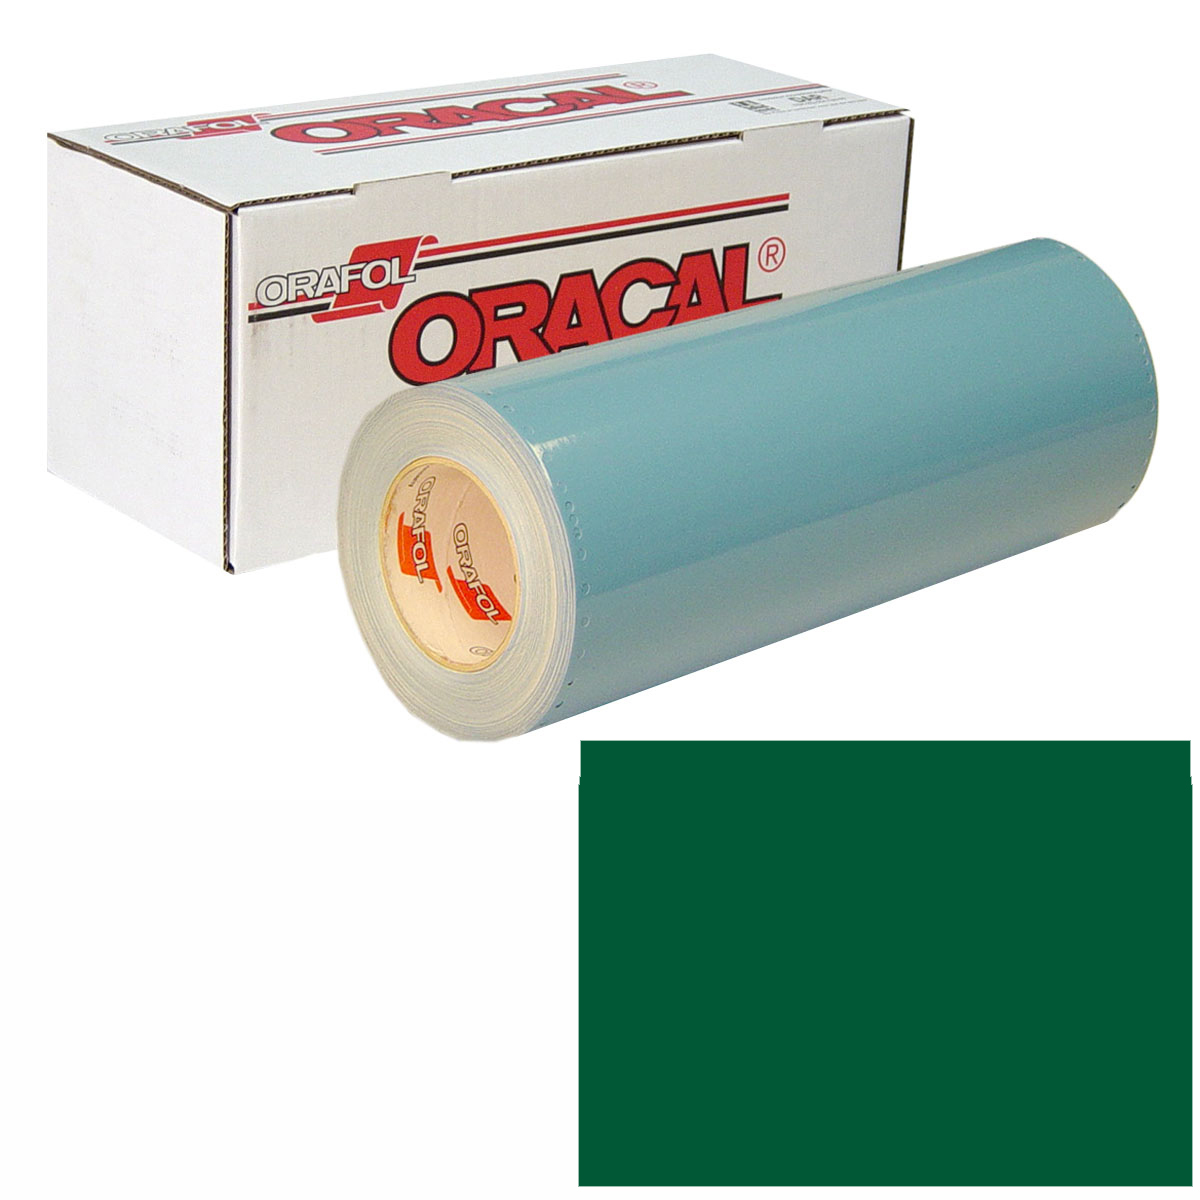 ORACAL 751 15In X 10Yd 060 Dark Green